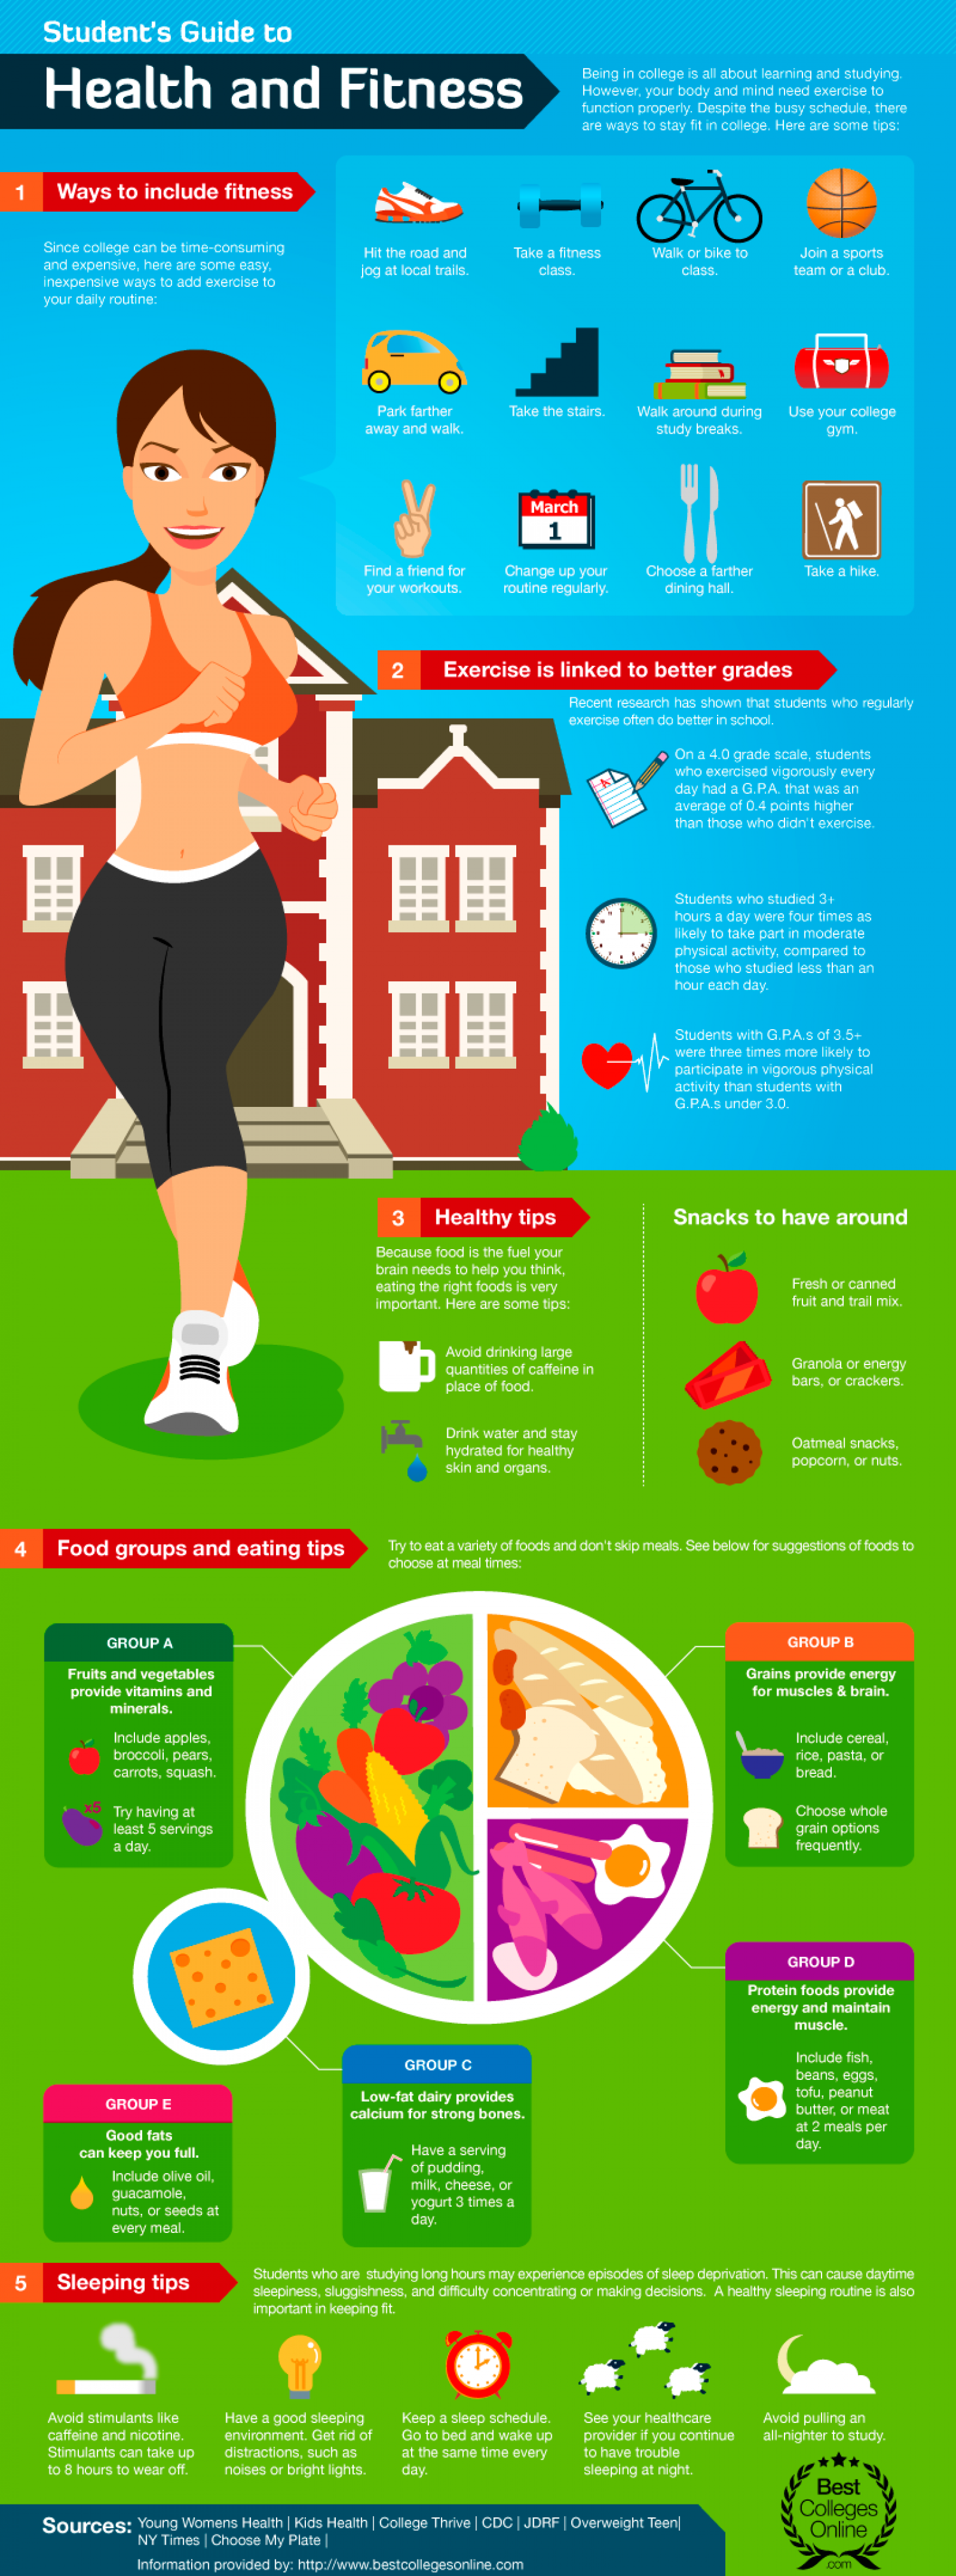 Students Guide to Health and Fitness Infographic